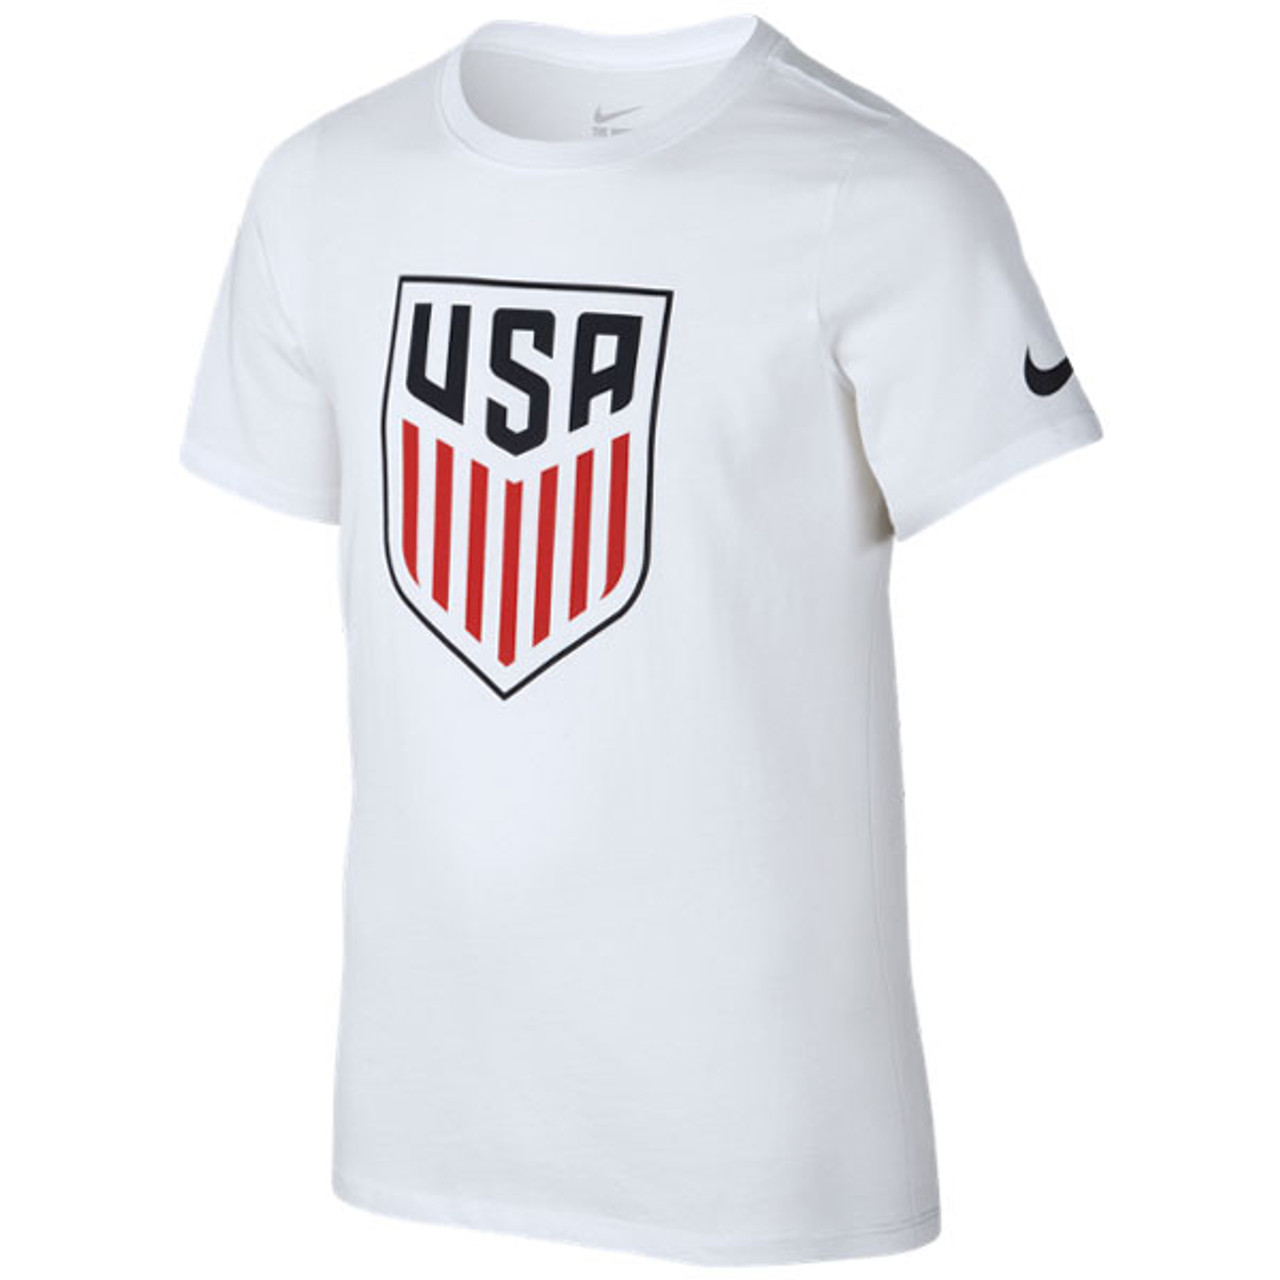 f23d8ad33e8 Nike Youth USA Crest T‑shirt - White - ohp soccer